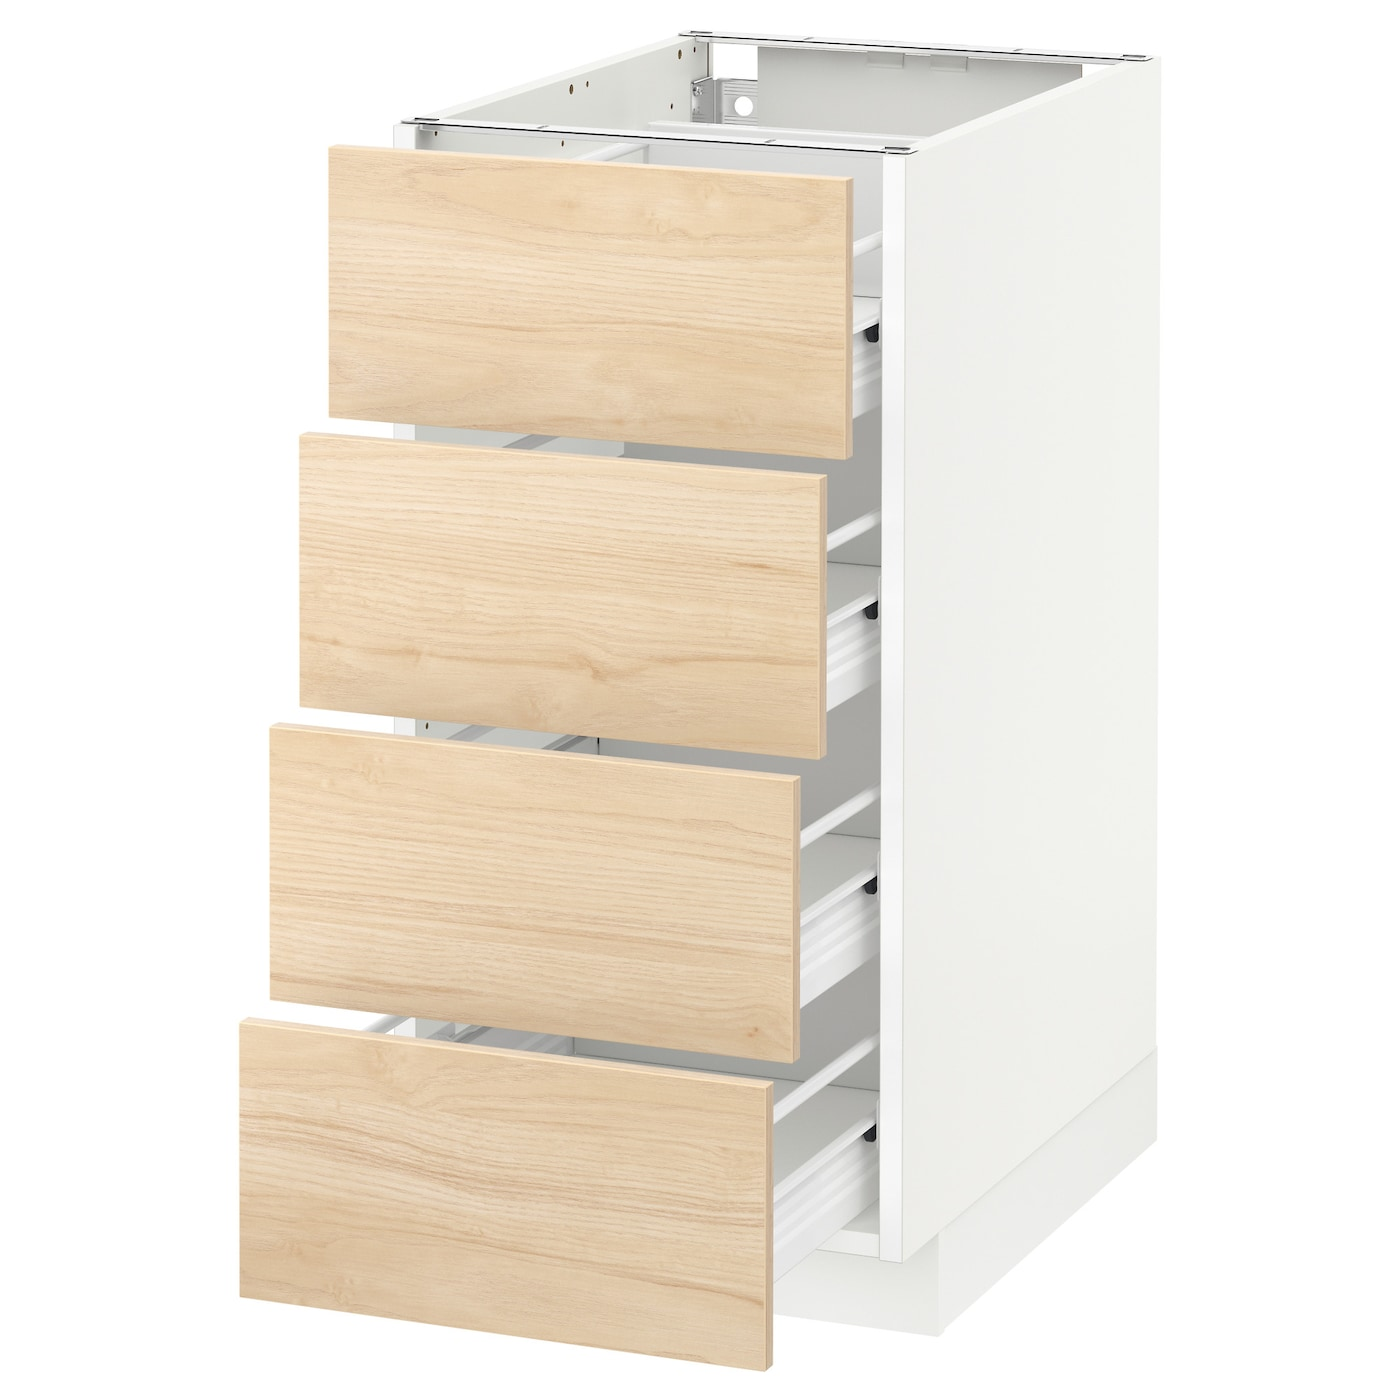 IKEA METOD/FÖRVARA base cab 4 frnts/4 drawers Sturdy frame construction, 18 mm thick.